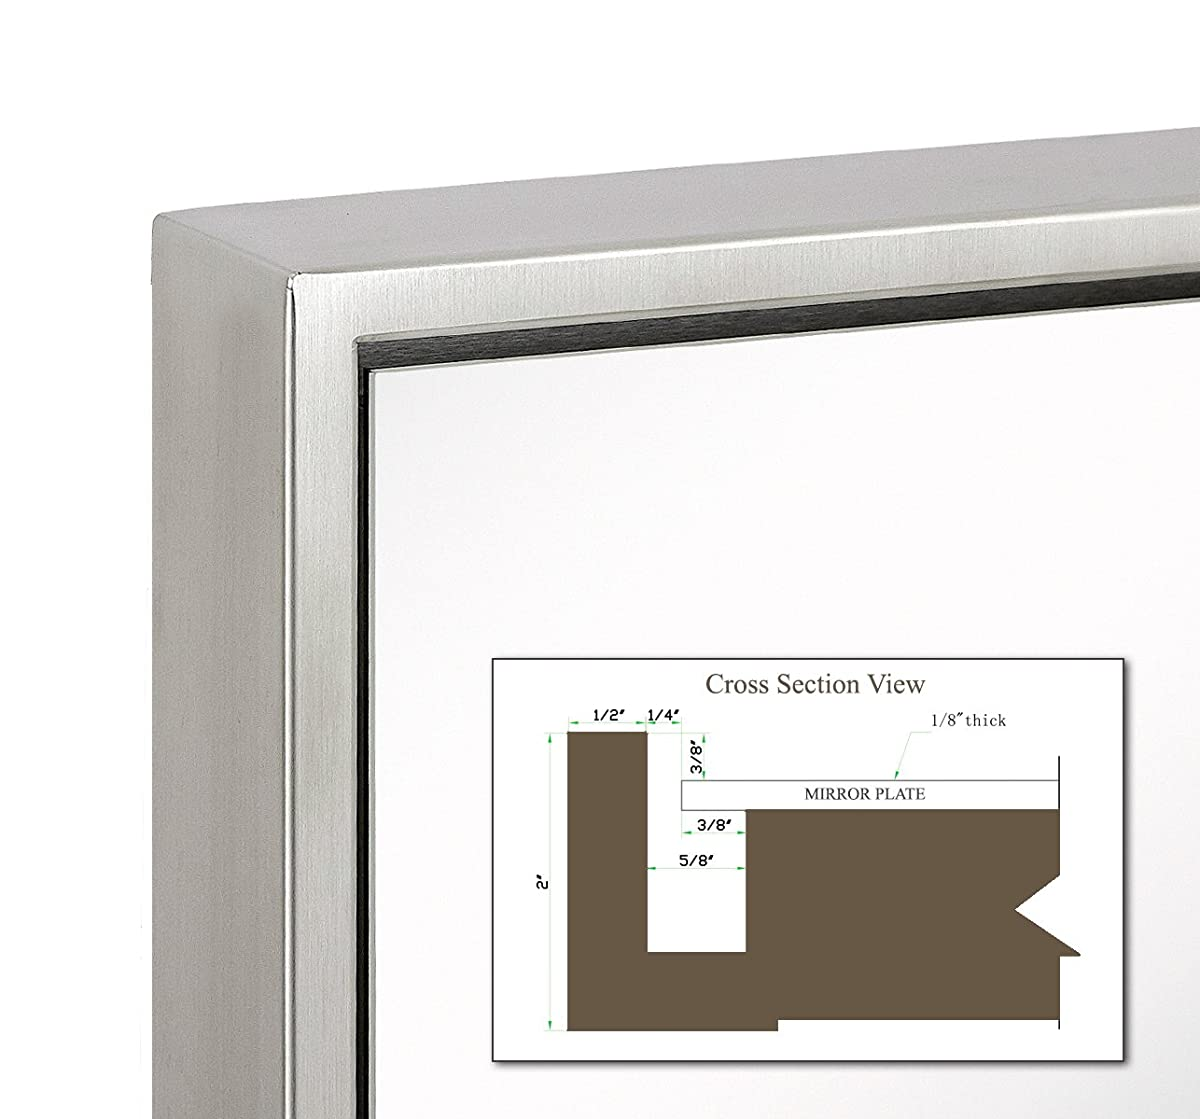 "Clean Large Modern Brushed Nickel Frame Wall Mirror | Contemporary Premium Silver Backed Floating Glass | Vanity, Bedroom, or Bathroom | Mirrored Rectangle Hangs Horizontal or Vertical  (24"" x 36"")"